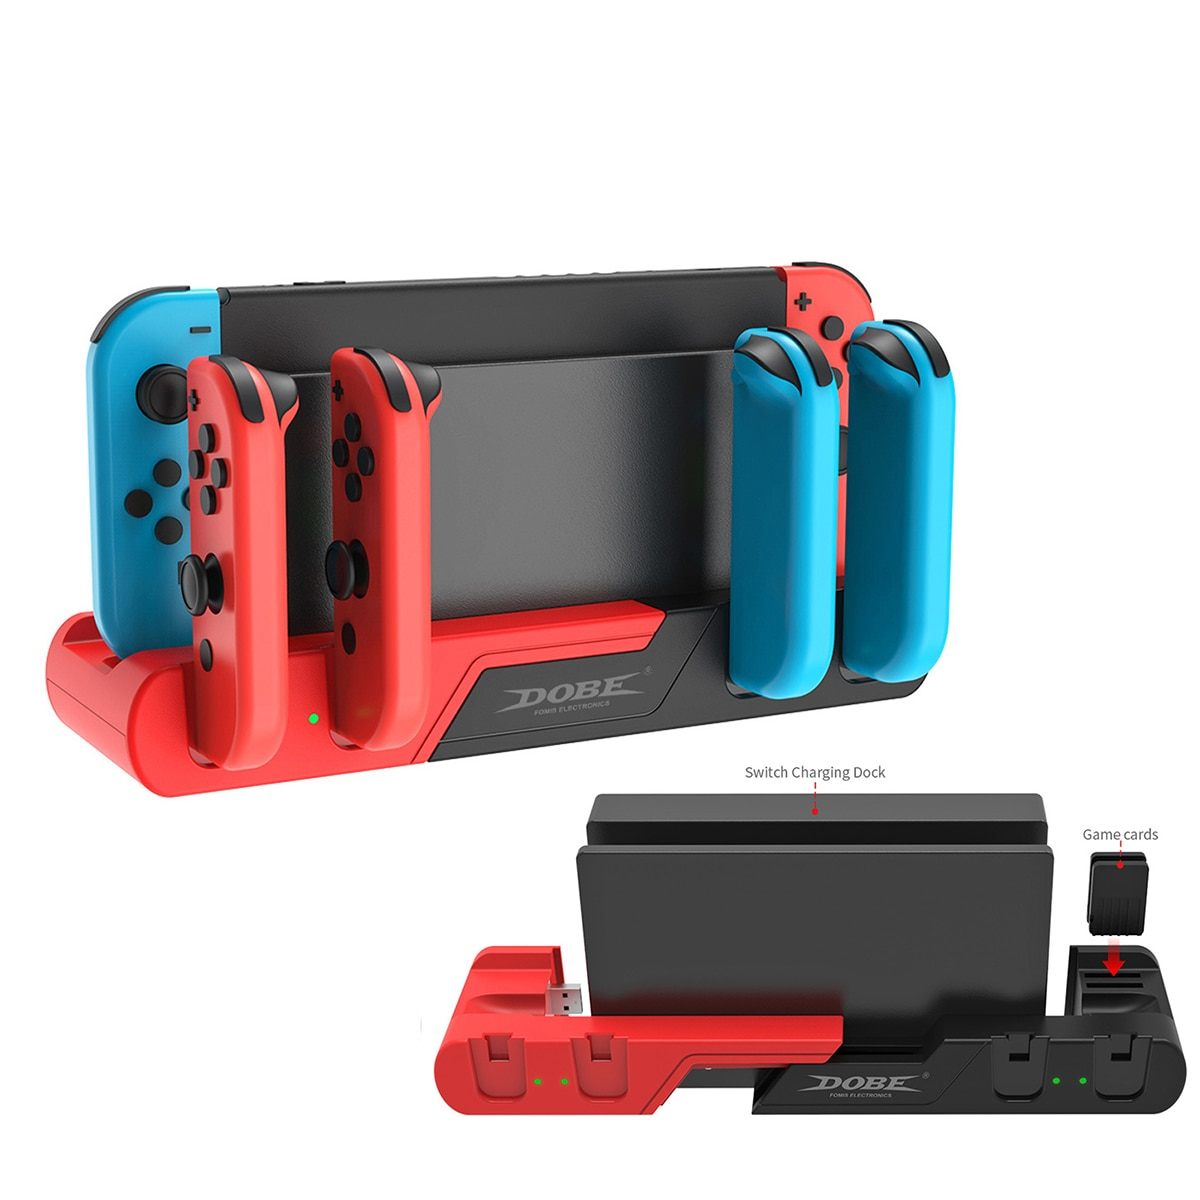 LED Charging Dock Station Charger Cradle For Nintendo Switch 4 Joy-Con Controllers 4 In 1 Charging Stand For Nintendo Switch NS